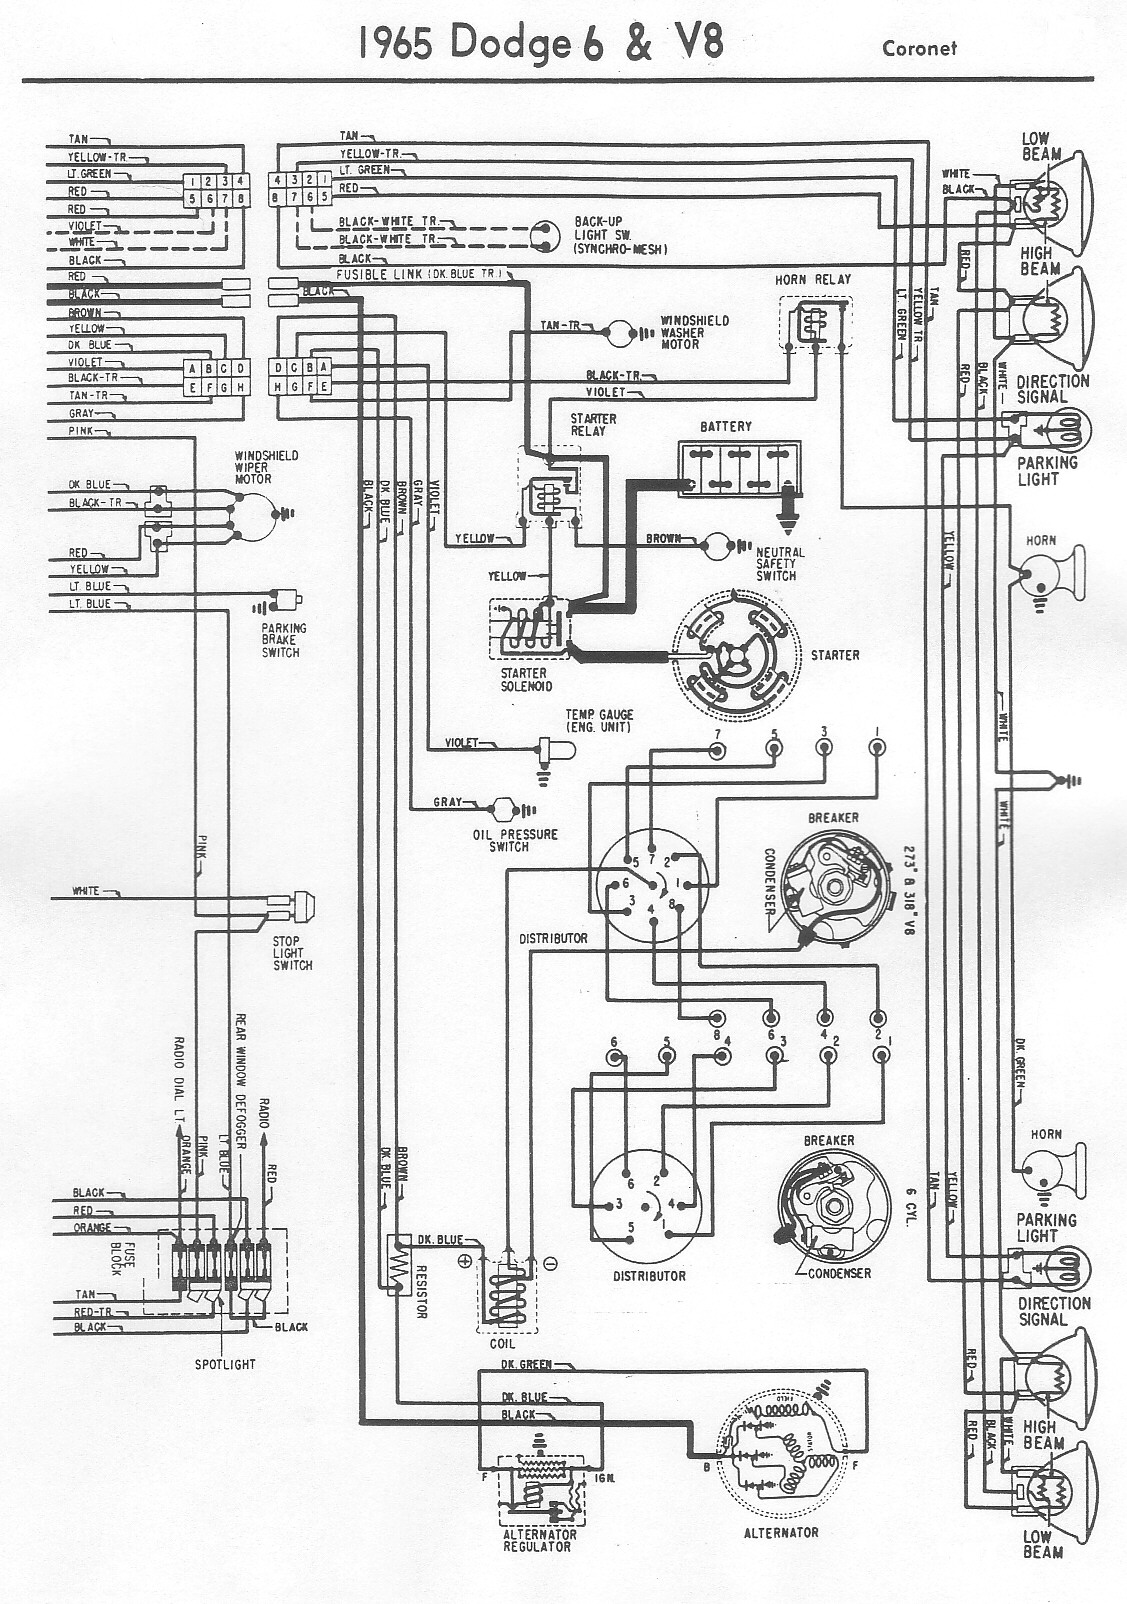 small resolution of 70 dart wiring diagram wiring diagram blogs dodge challenger wiring diagram 69 dart wiring diagram